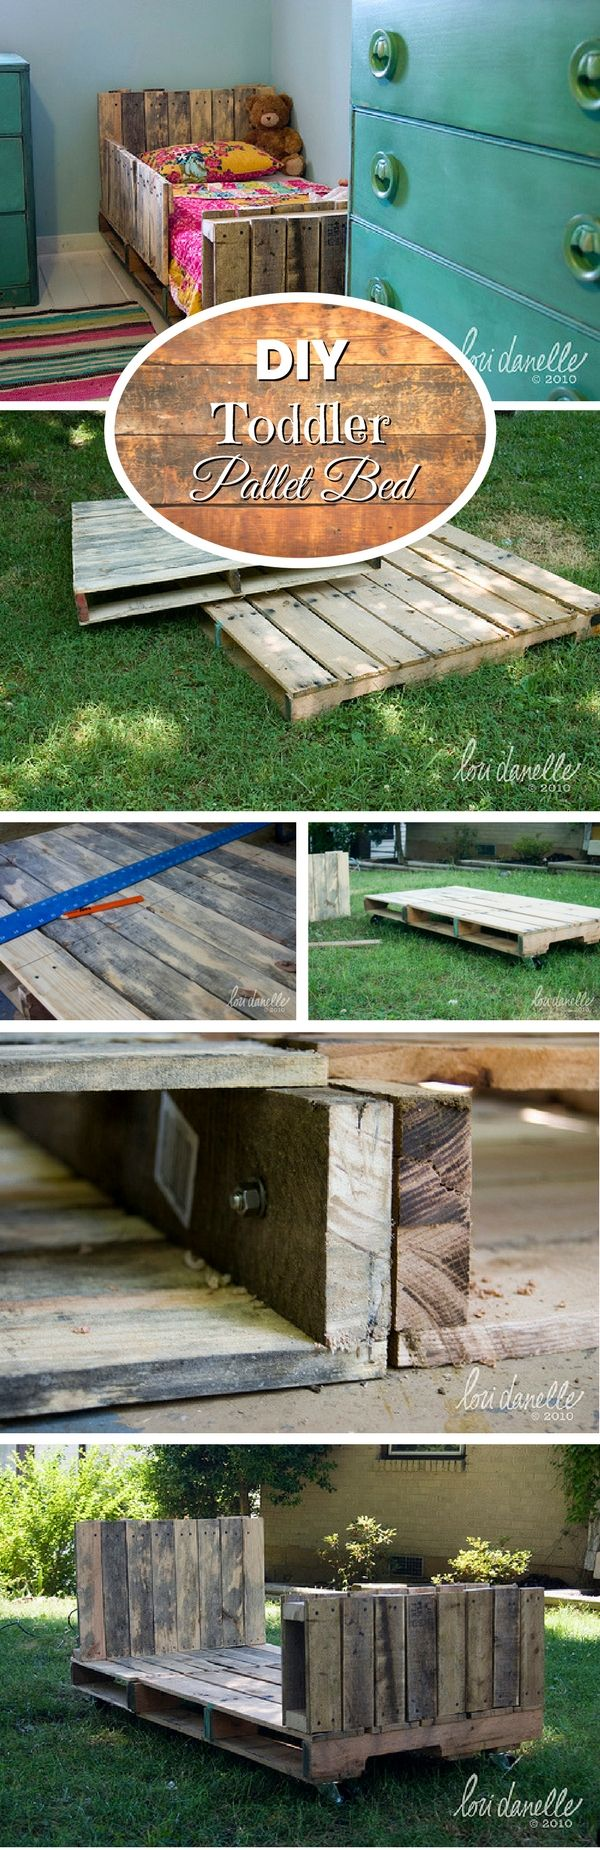 If you have toddlers in your family, this pallet bed is a great project to build something for them. This bed is quite easy to make from wood of just two pallets. Your kids will love the warm rustic theme in their room as well. Follow the tutorial for easy instructions